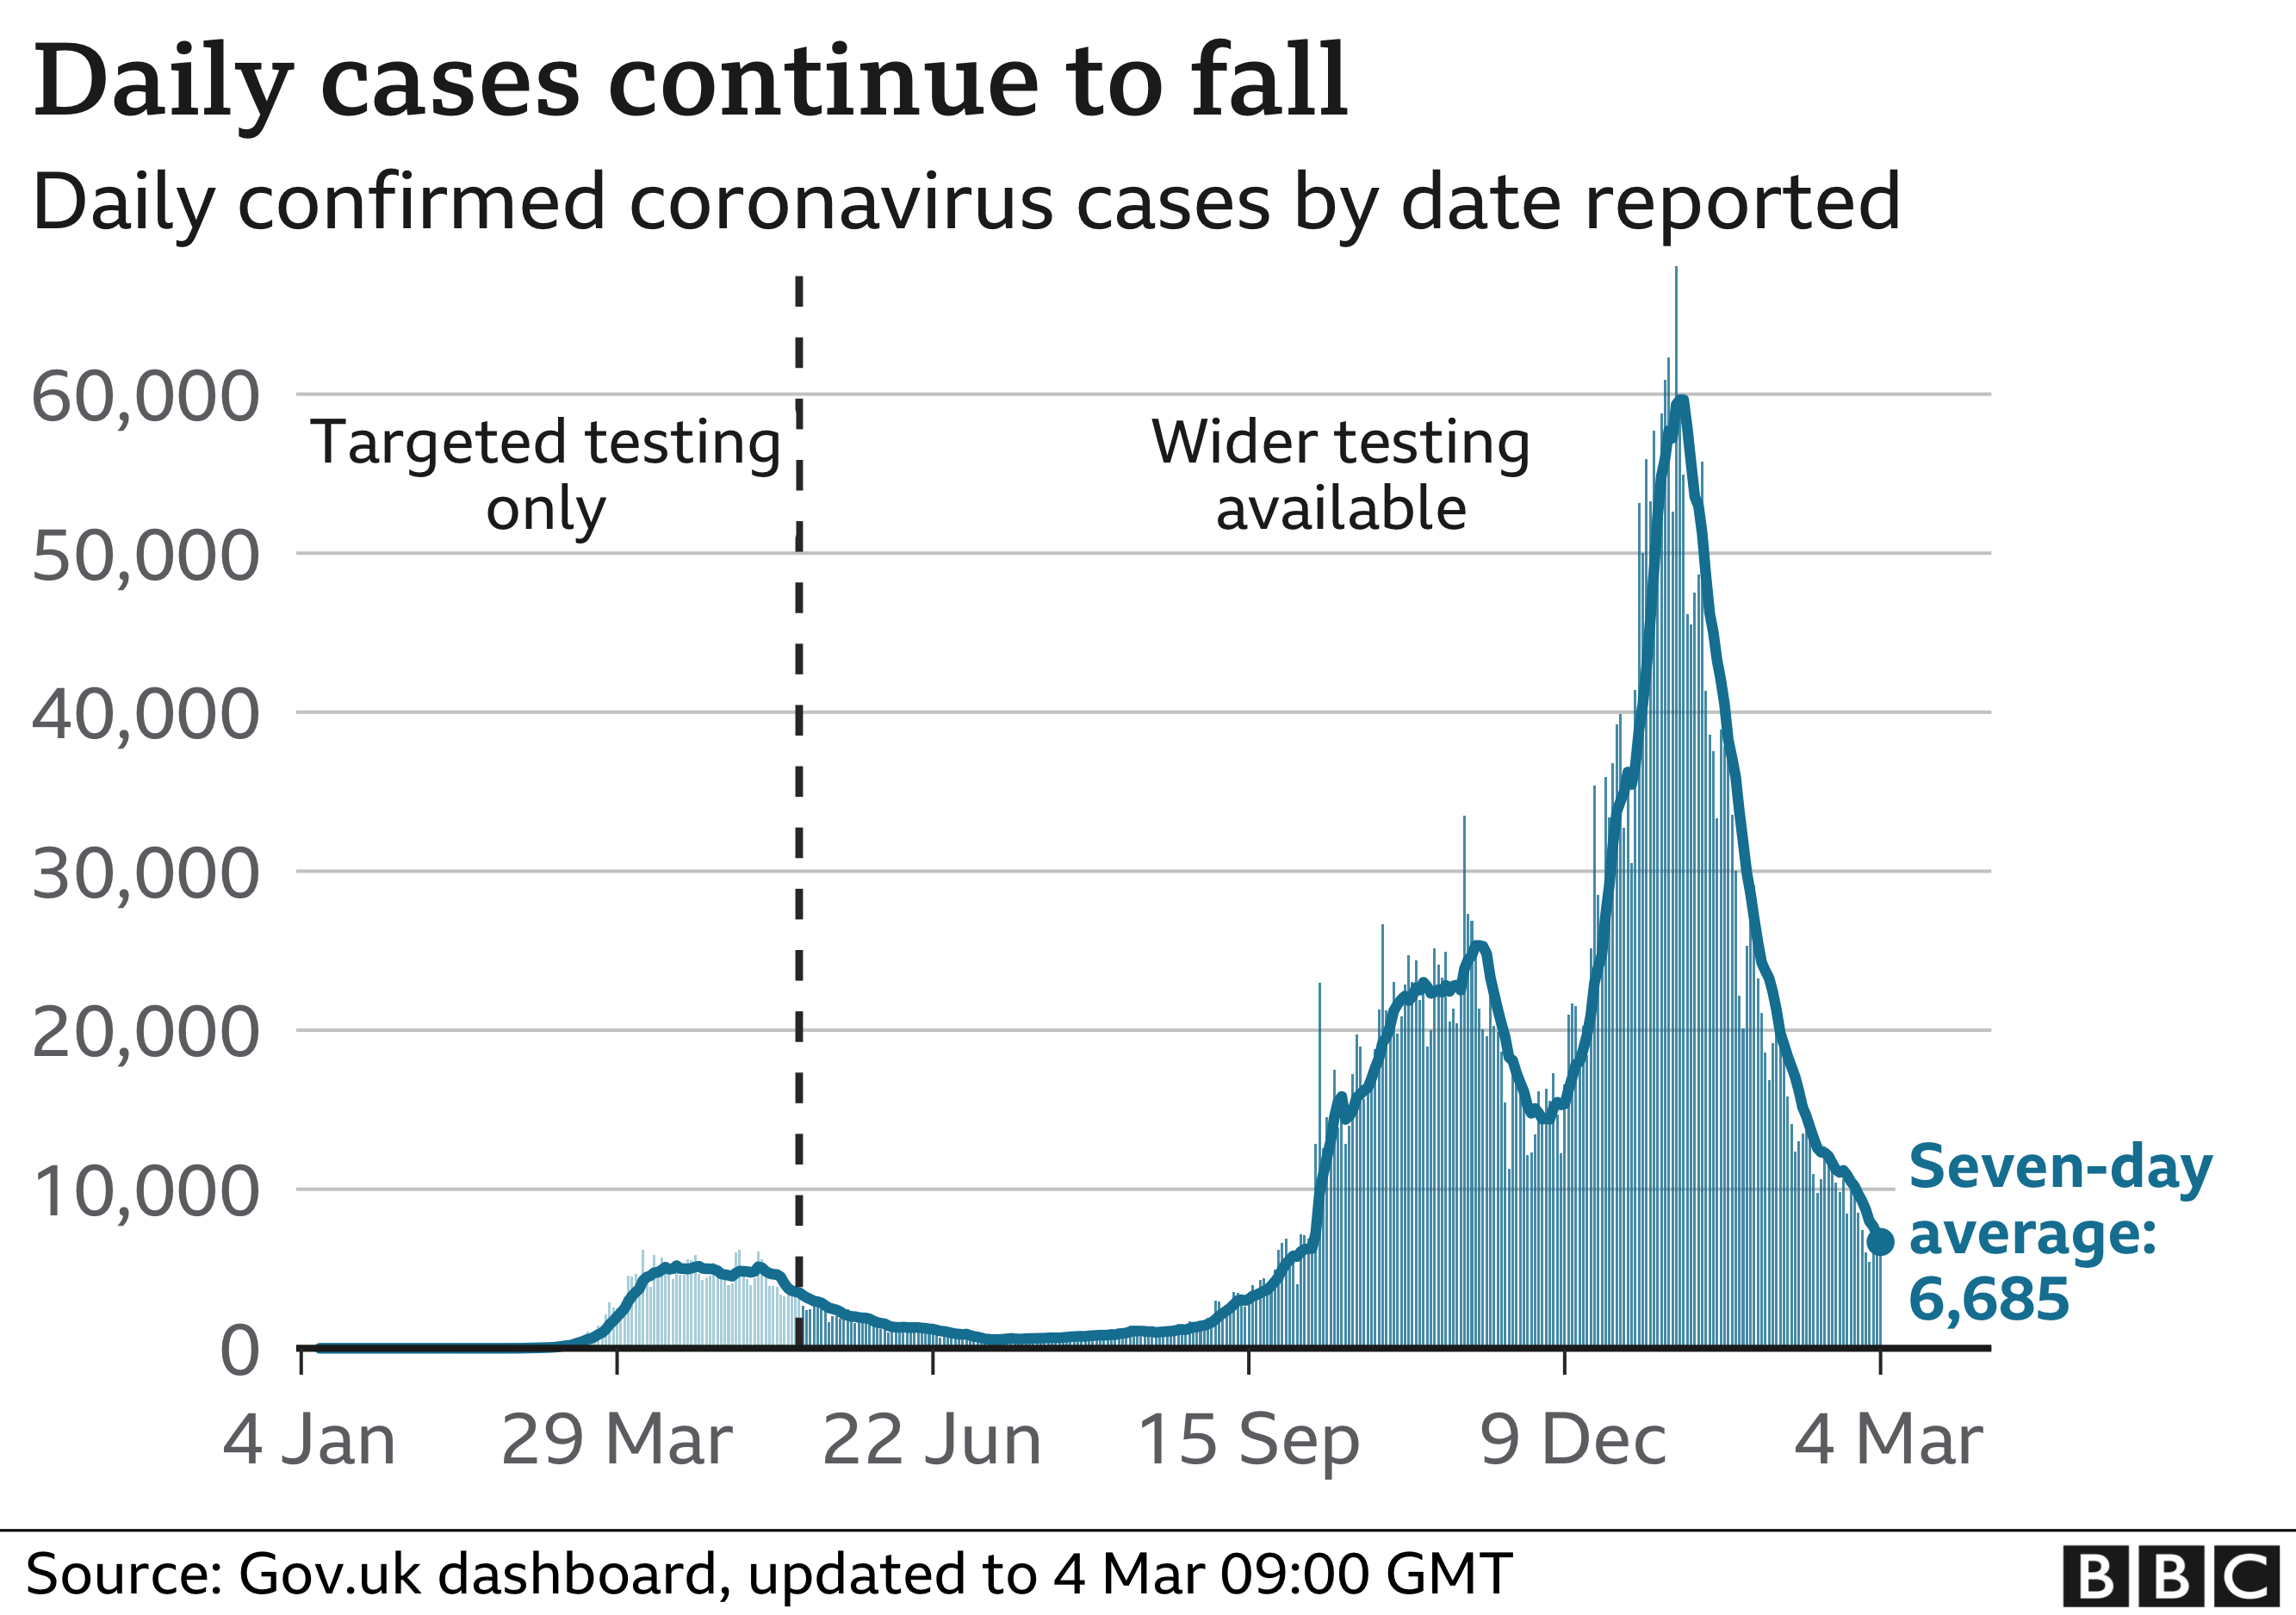 Chart showing cases continuing to decline